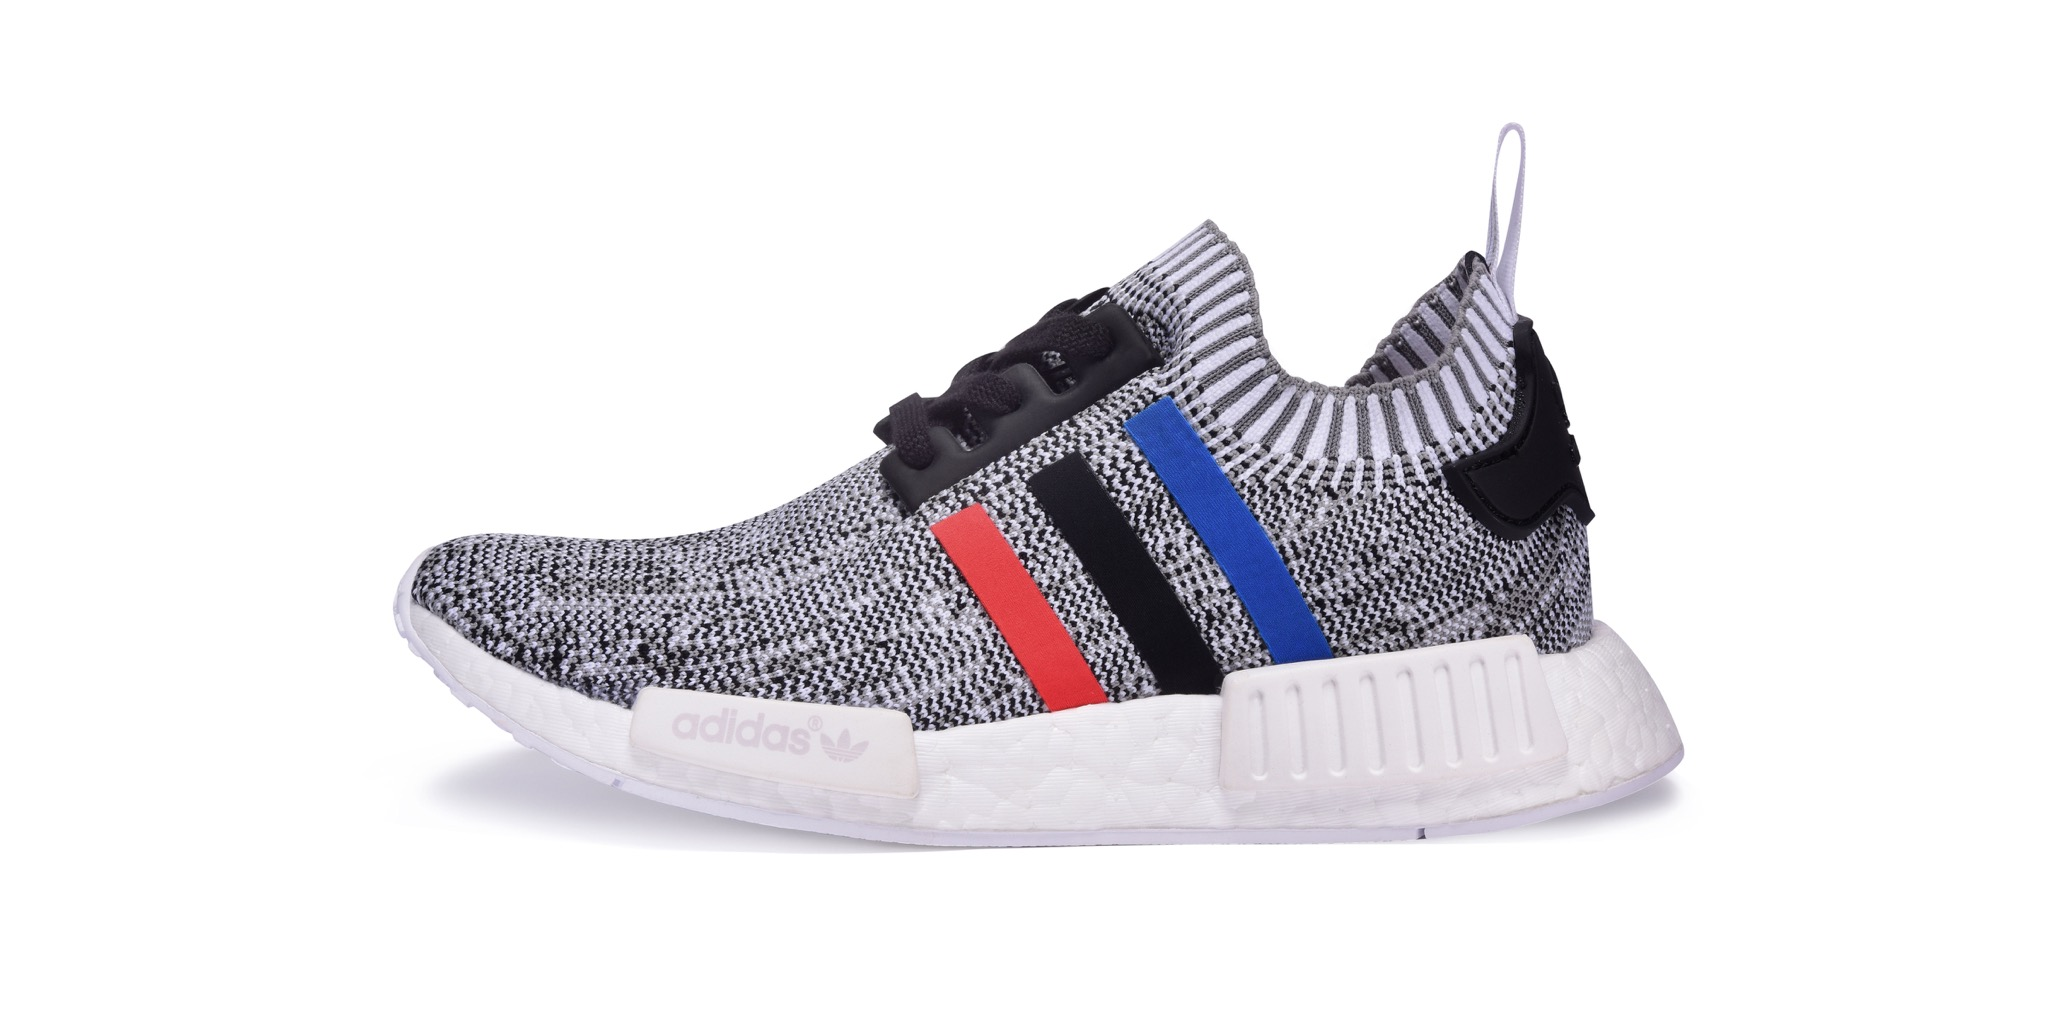 High_1600_800@x3_0014_adidas-NMD-R1-Primeknit-White-Core-Red-Core-Black_44745